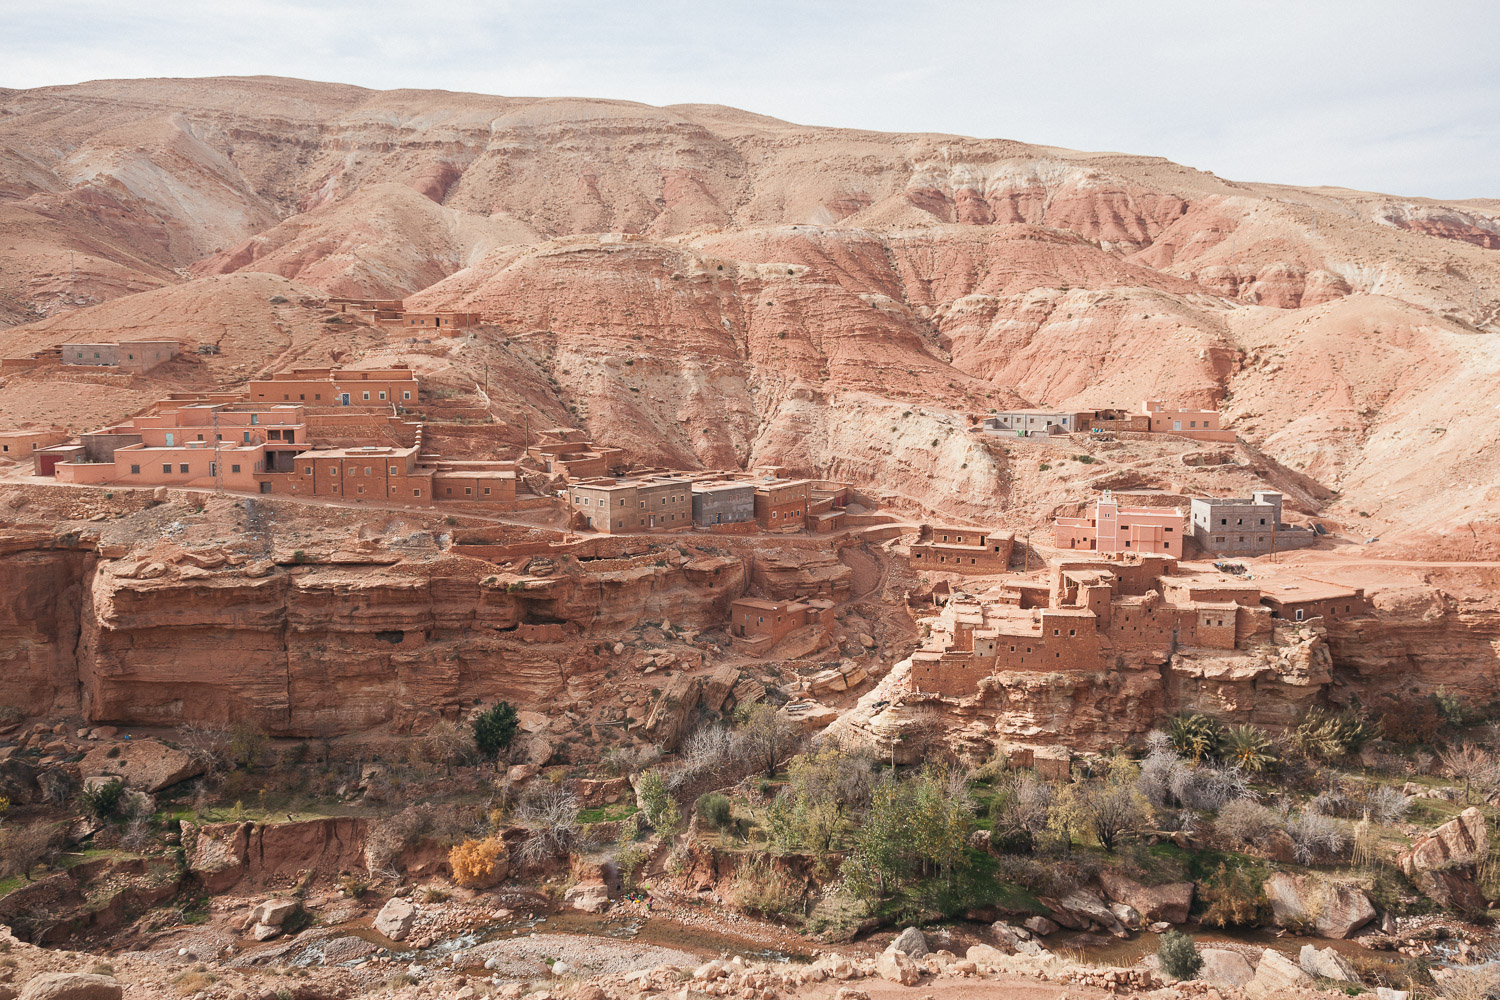 8bar bikes adventures morocco gravel 20151211 0060 bearbeitet - 8bar Adventures - Morocco - High Atlas - Part 2/2